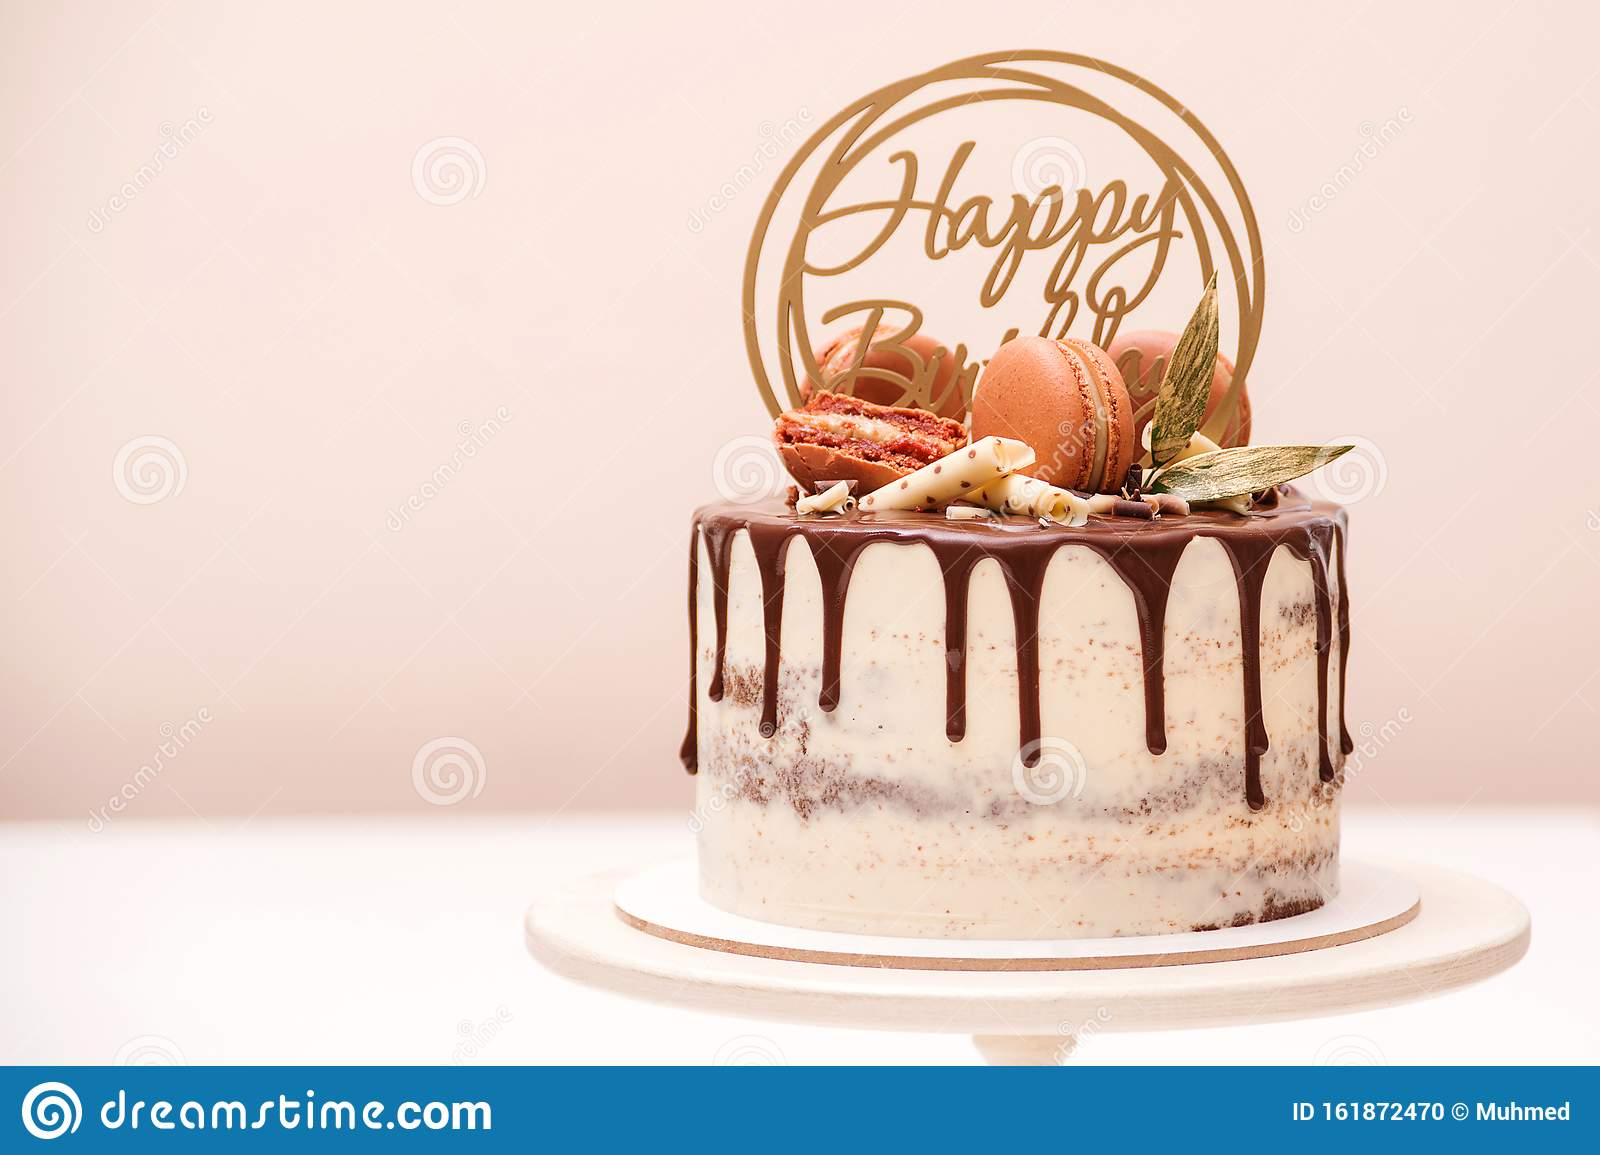 Miraculous Birthday Cake Decorated With Golden Macaroons And Chocolate Pieces Personalised Birthday Cards Veneteletsinfo